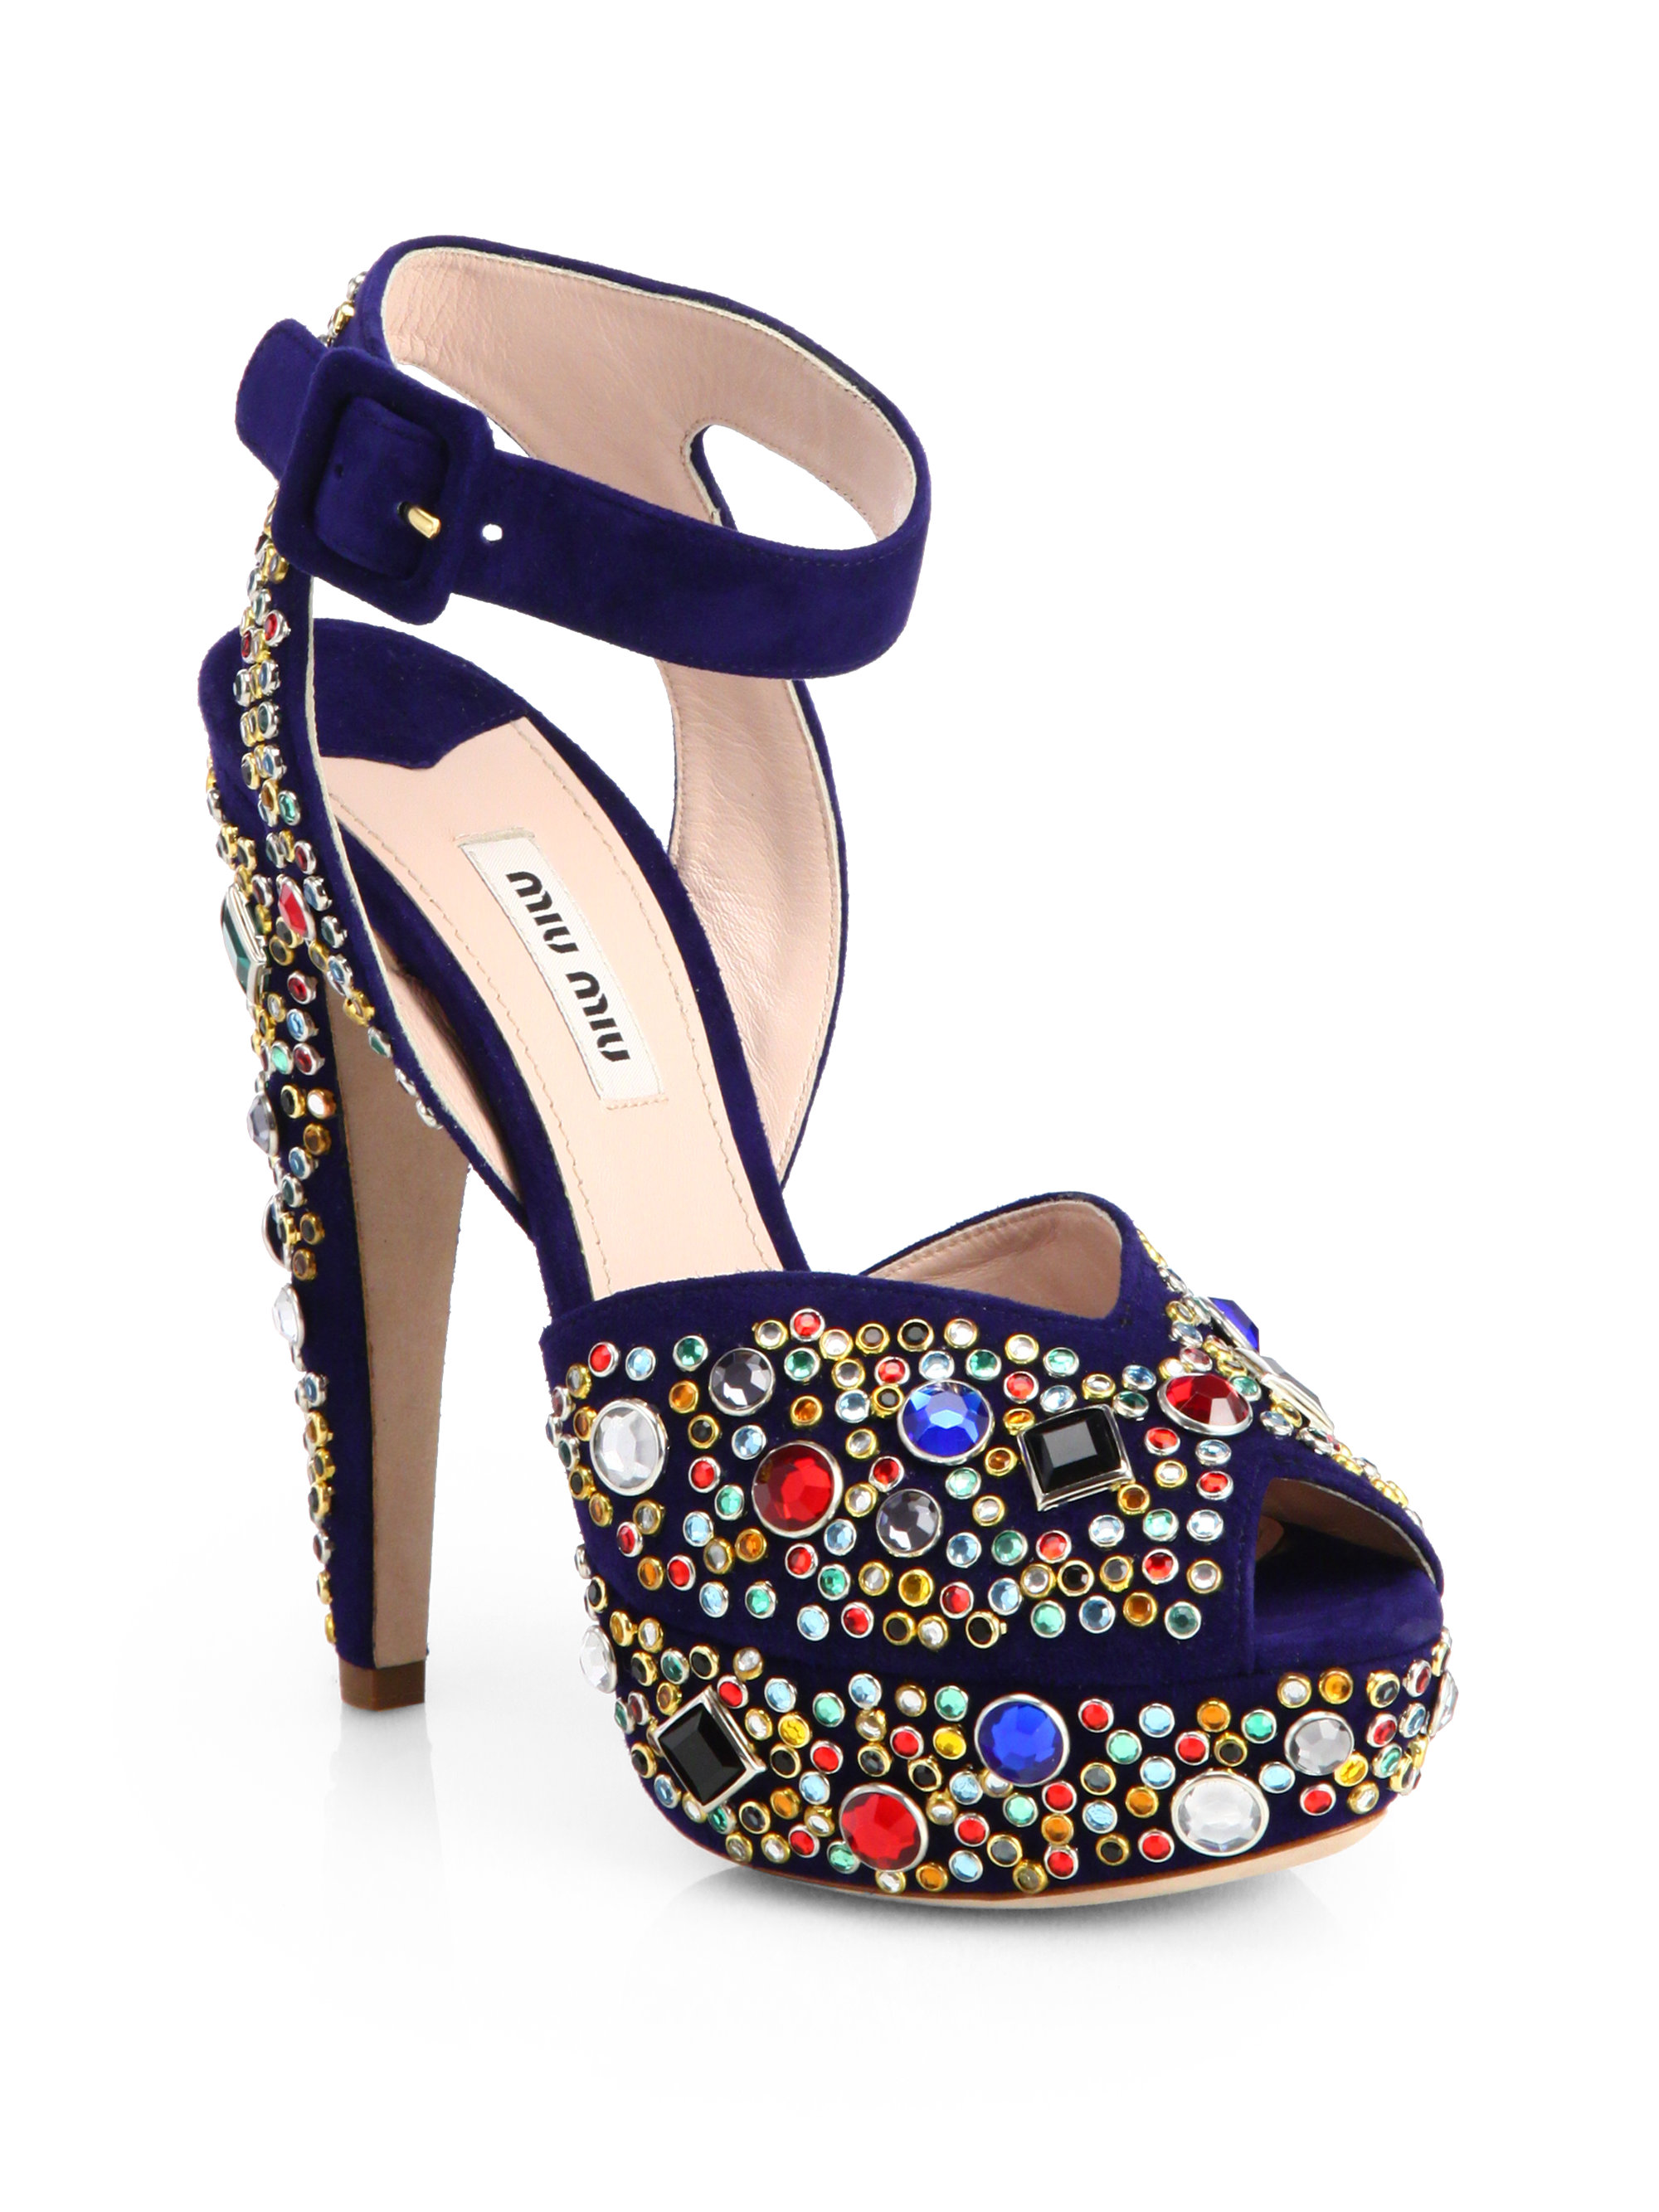 miu miu donna jeweled suede platform sandals in blue navy multi lyst. Black Bedroom Furniture Sets. Home Design Ideas